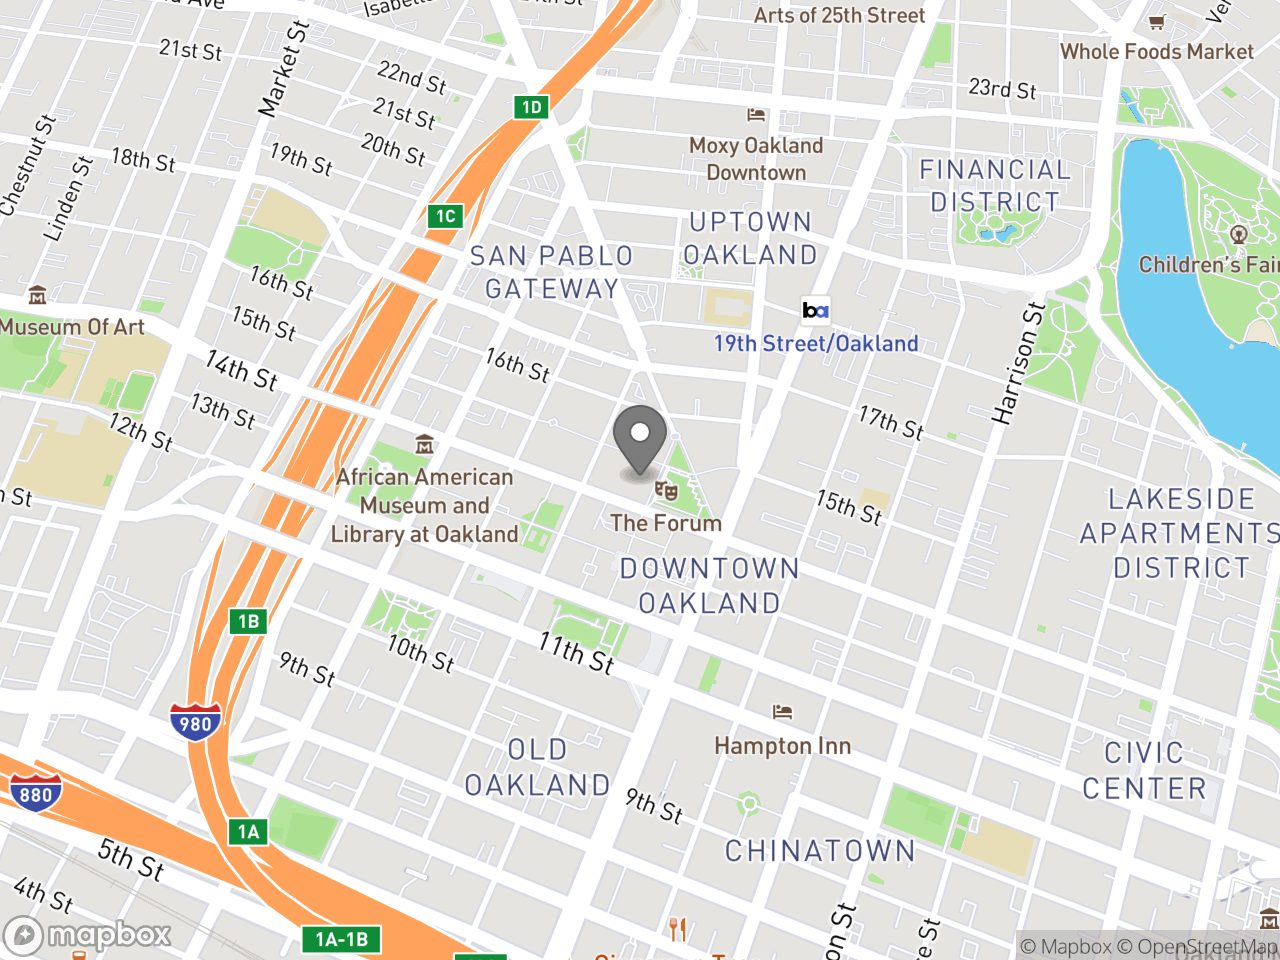 Map location for July 20, 2016 Planning Commission Meeting, located at 1 Frank H Ogawa Plaza   in Oakland, CA 94612